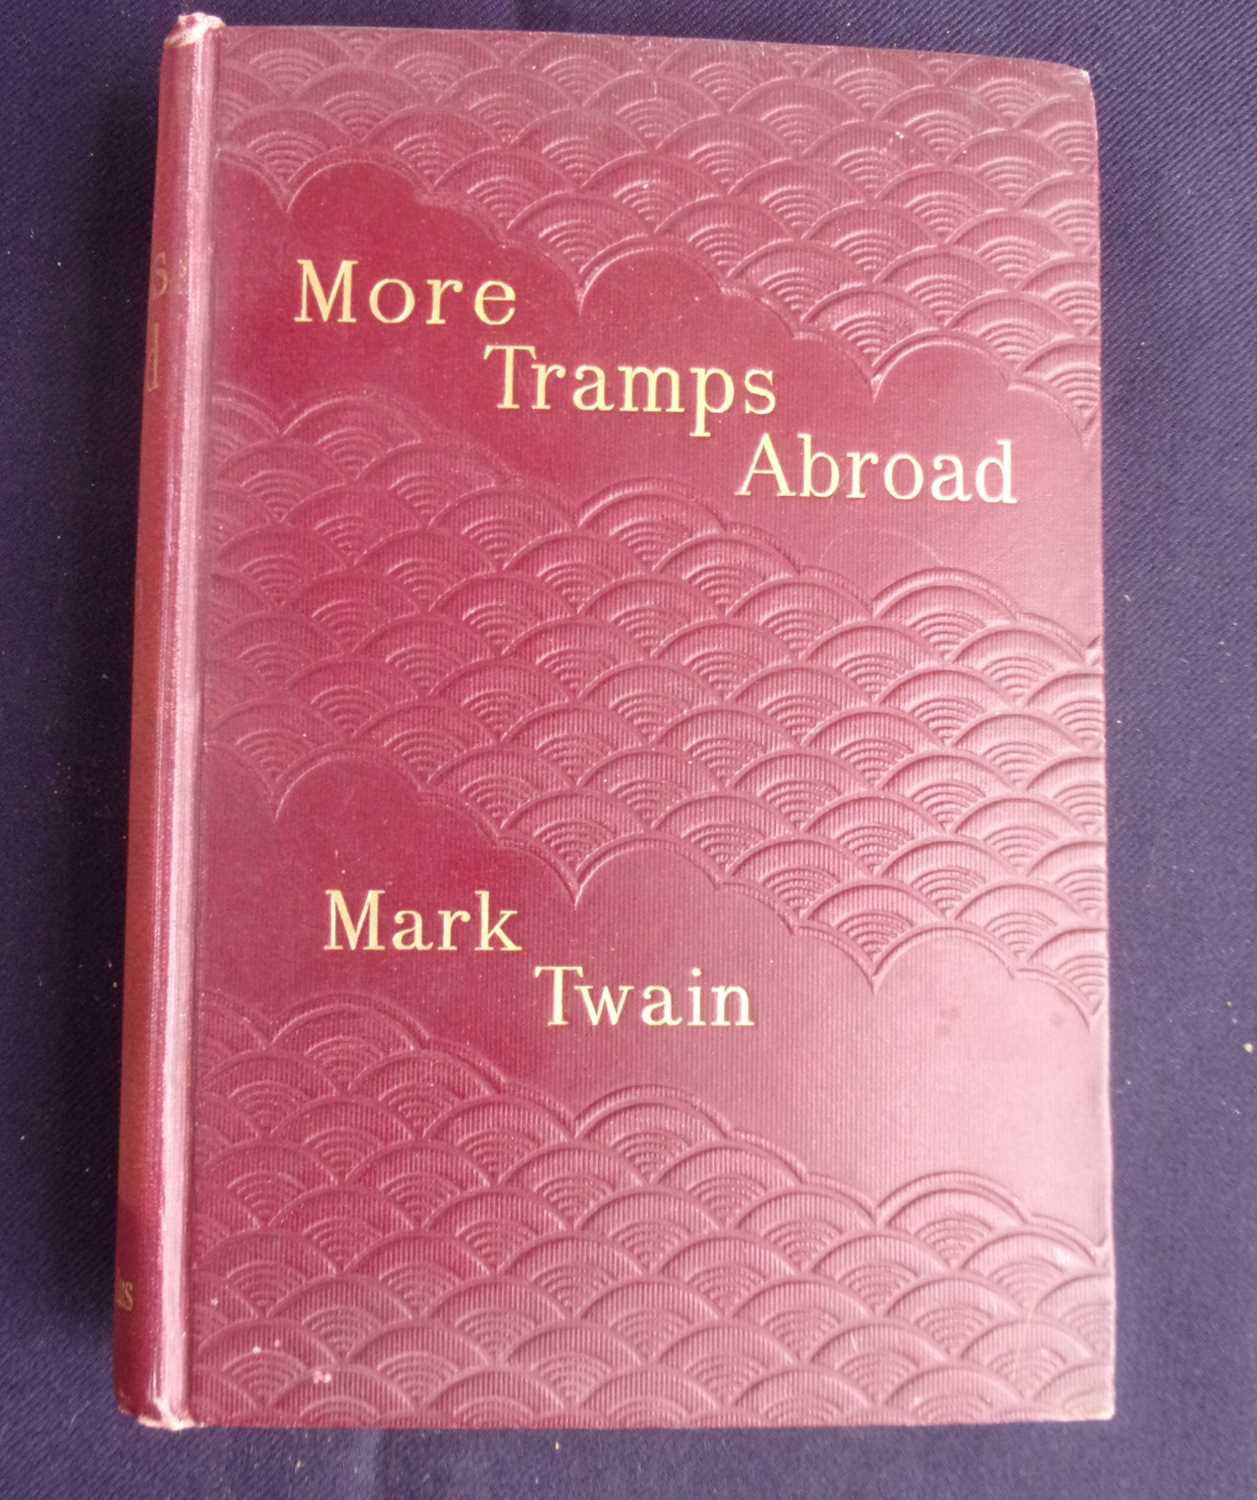 TWAIN, Mark. More Tramps Abroad. Chatto & Windus, London. 1897 UK 1st Edition. In original